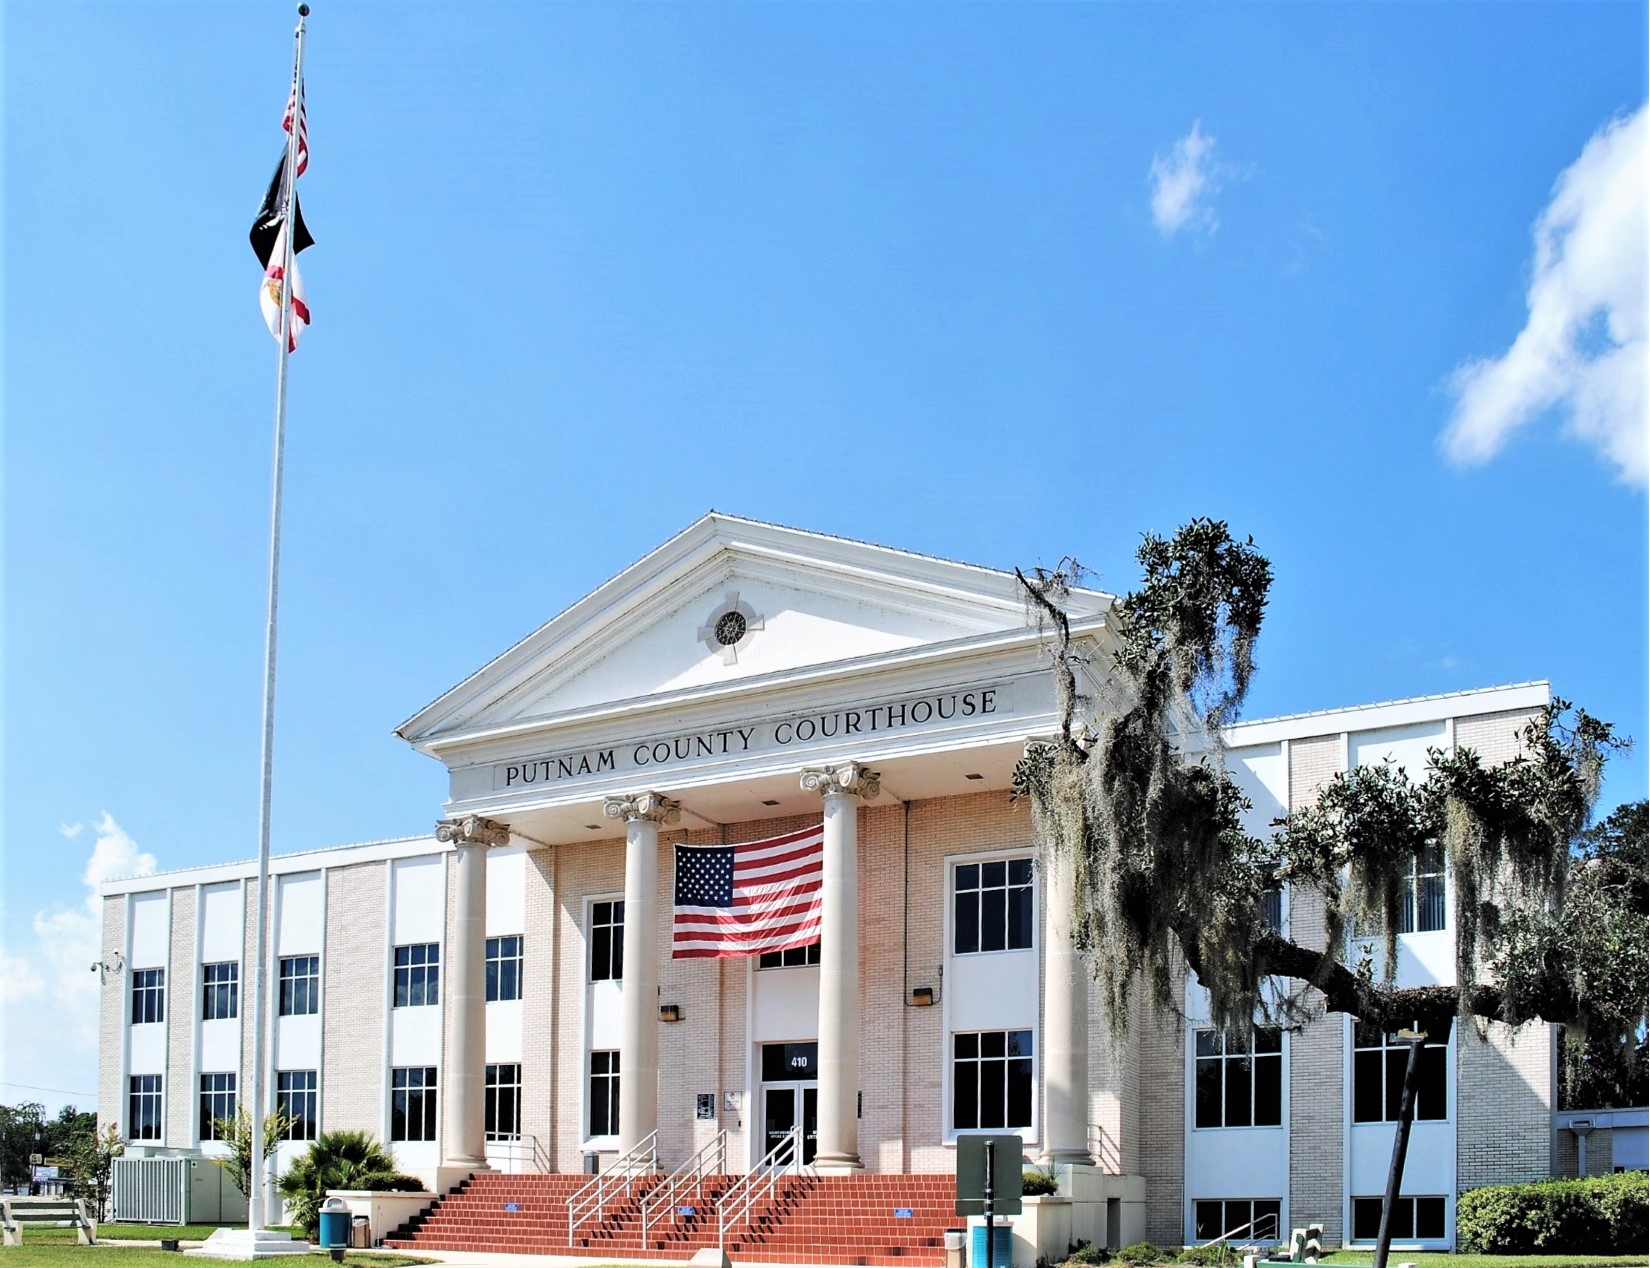 Putnam County Courthouse1 (2)